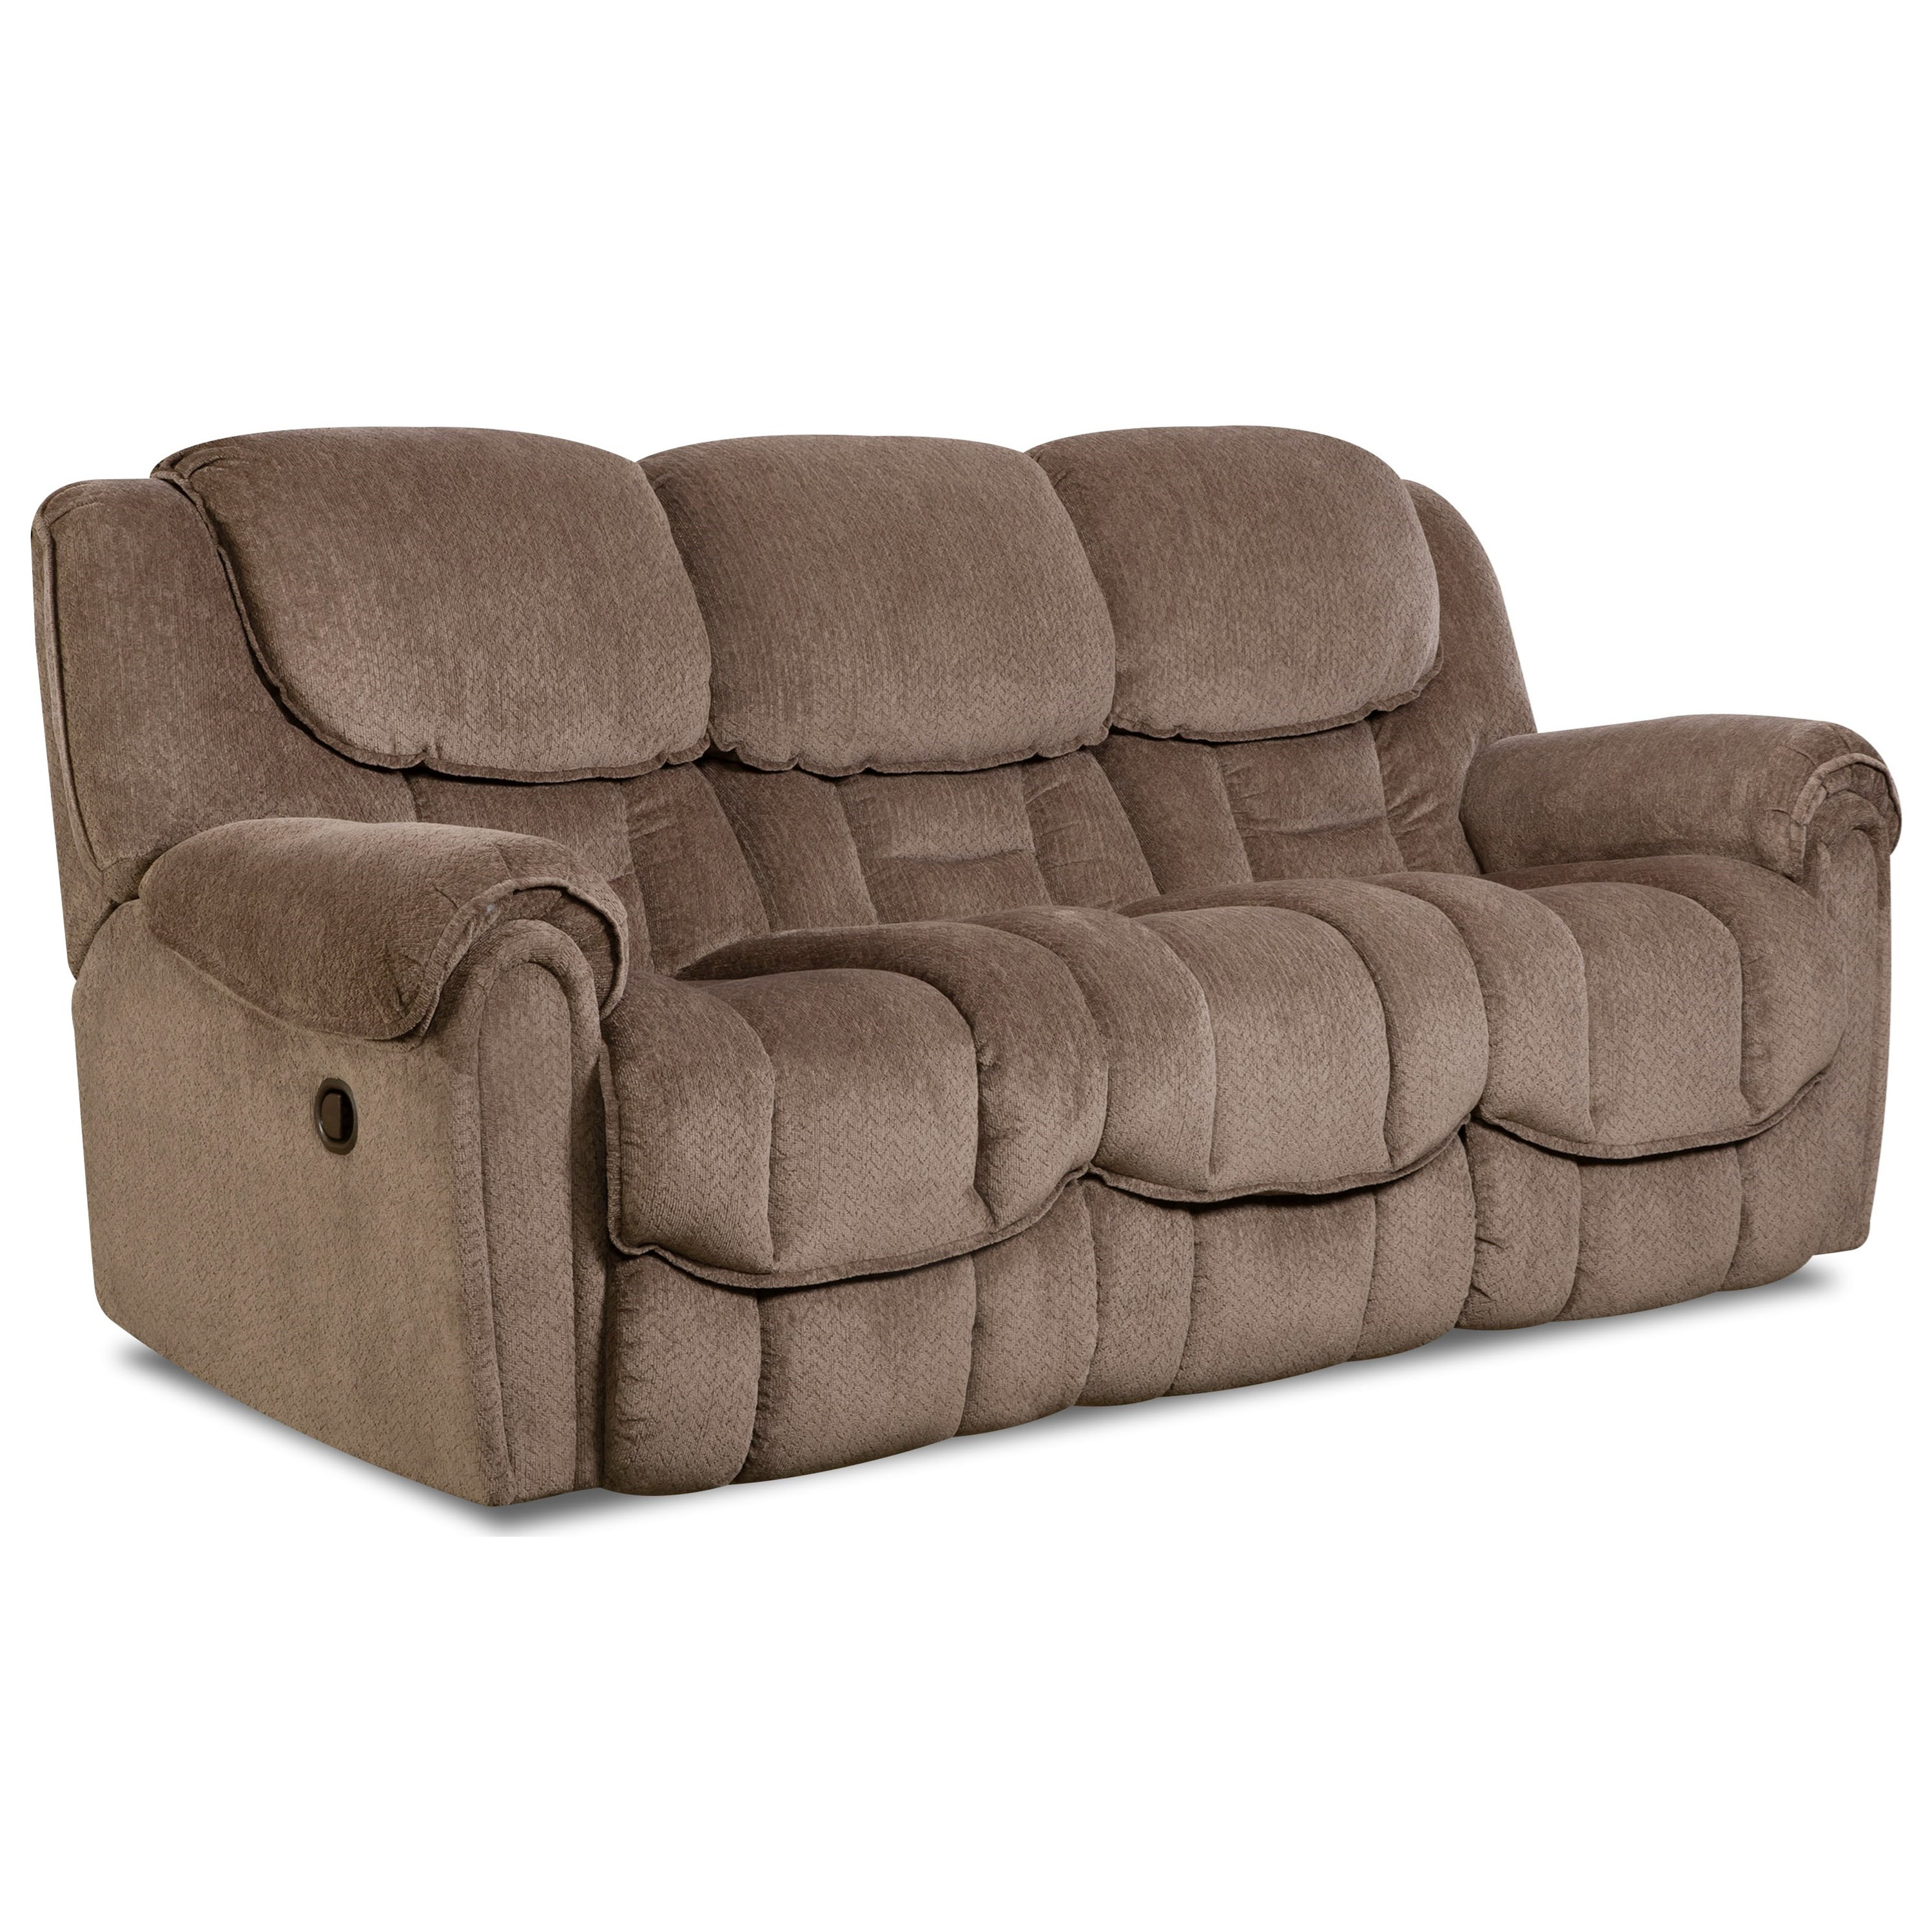 HomeStretch Del Mar 122 Double Reclining Sofa - Item Number: 122-30-17